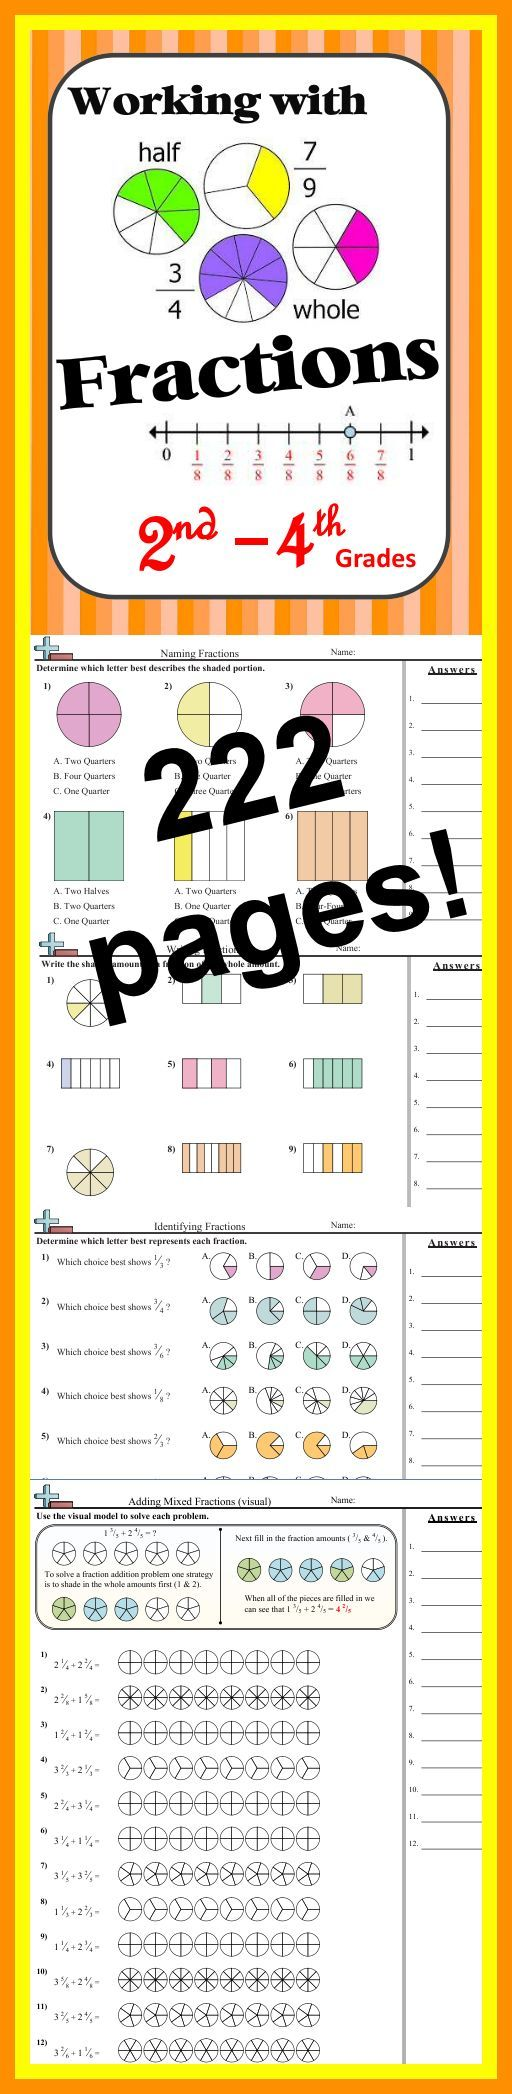 Math DOWNLOAD: Working with Fractions (222 pages!) This large download provides plenty of fraction practice for #2ndgrade #3rdgrade #4thgrade...Including: naming, creating, comparing fractions and more!